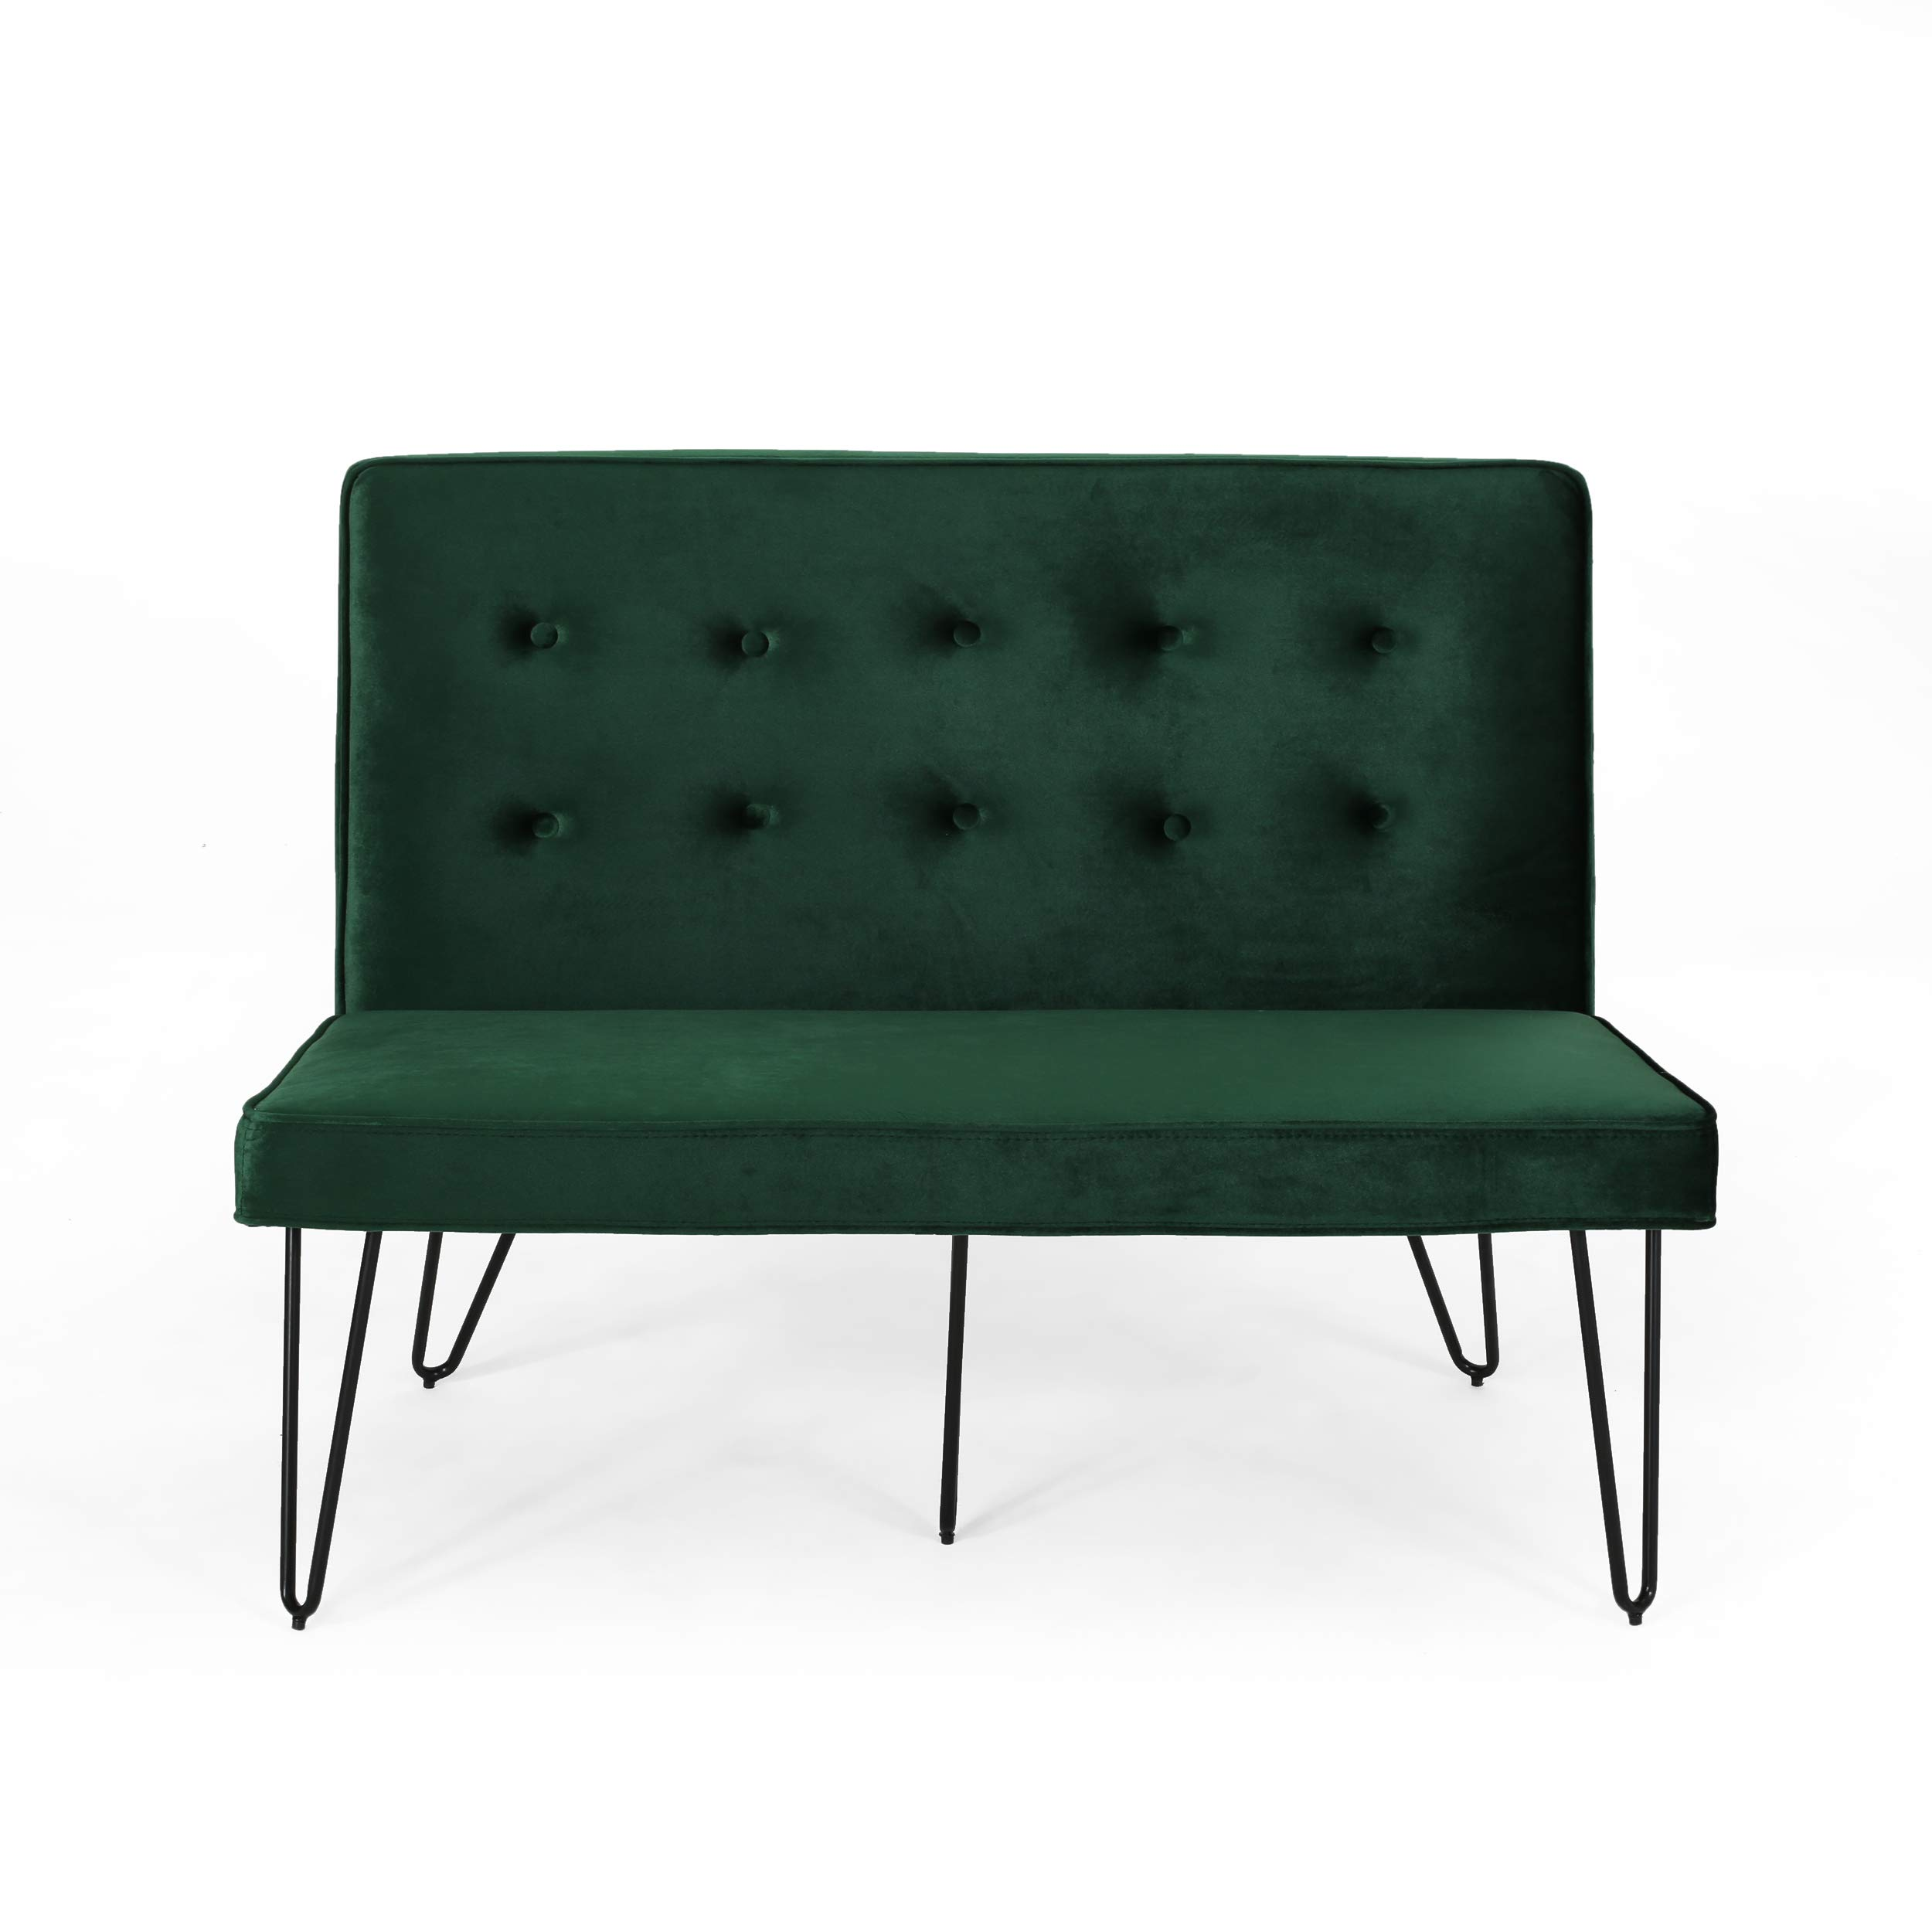 Beatrice Minimalist Dining Bench Settee with Tufted Velvet Cushion and Iron Legs - Emerald and Black